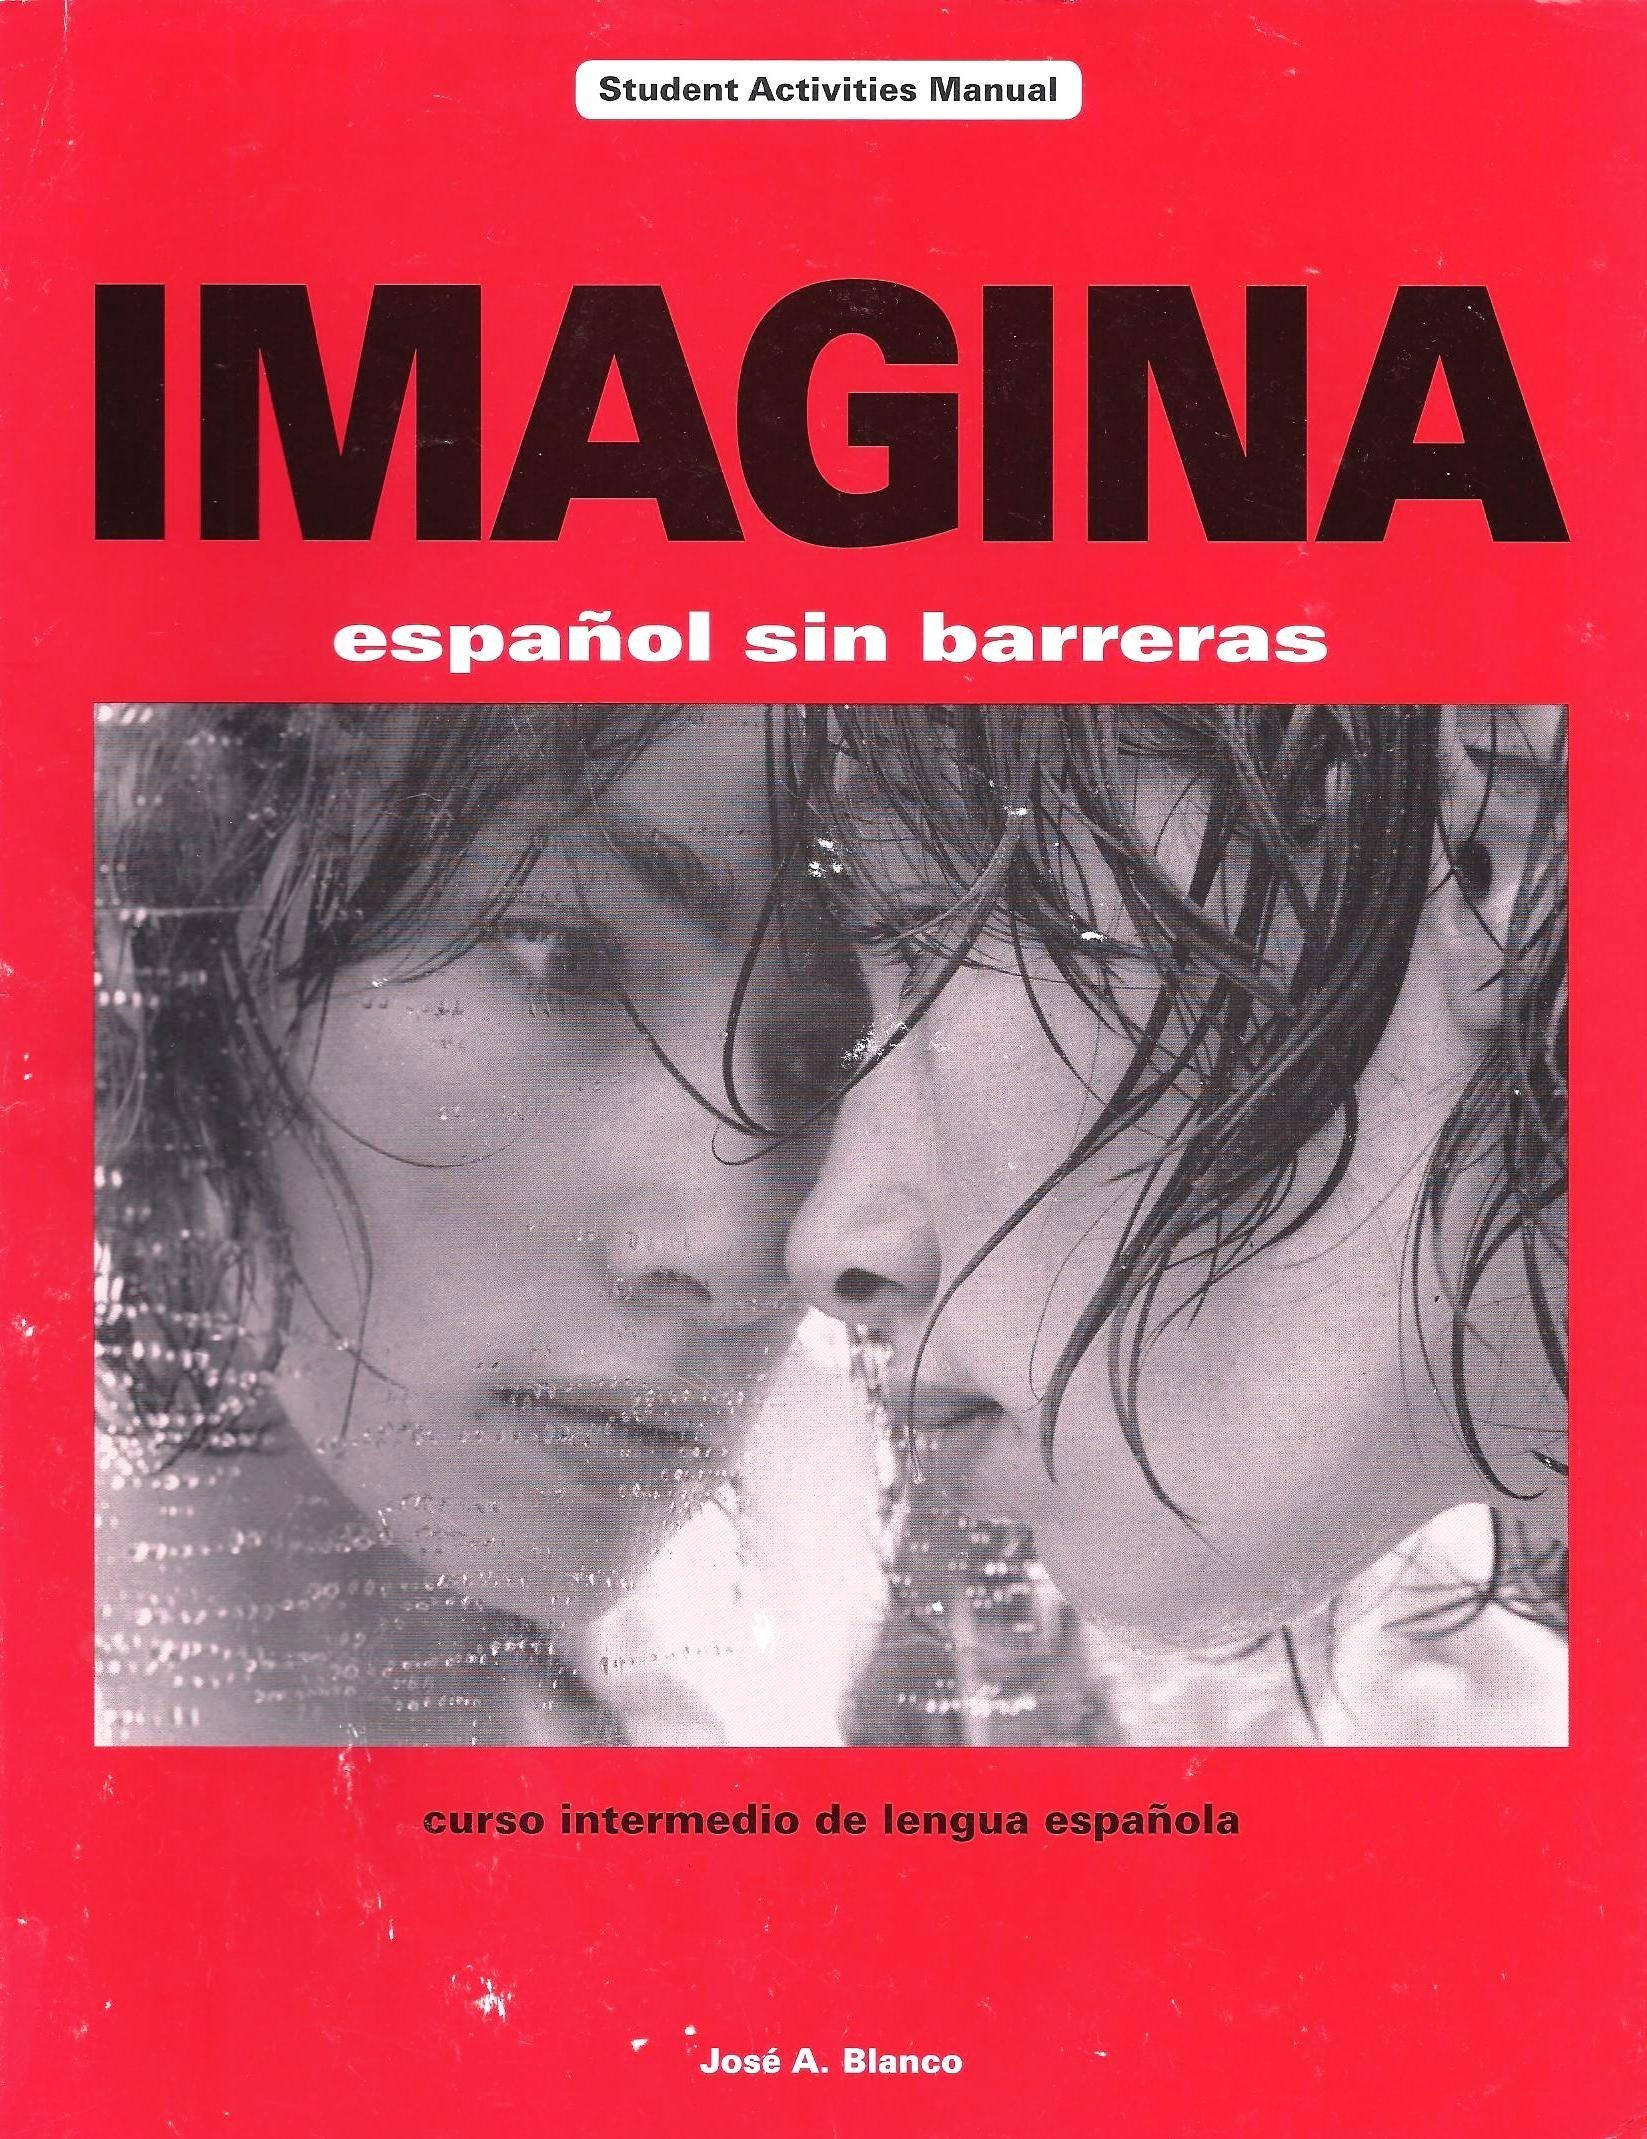 Imagina : Espanol Sin Barreras - Curso Intermedio De Lengua Espanola (Student  Activities Manual): JOSE A . BLANCO: Amazon.com: Books